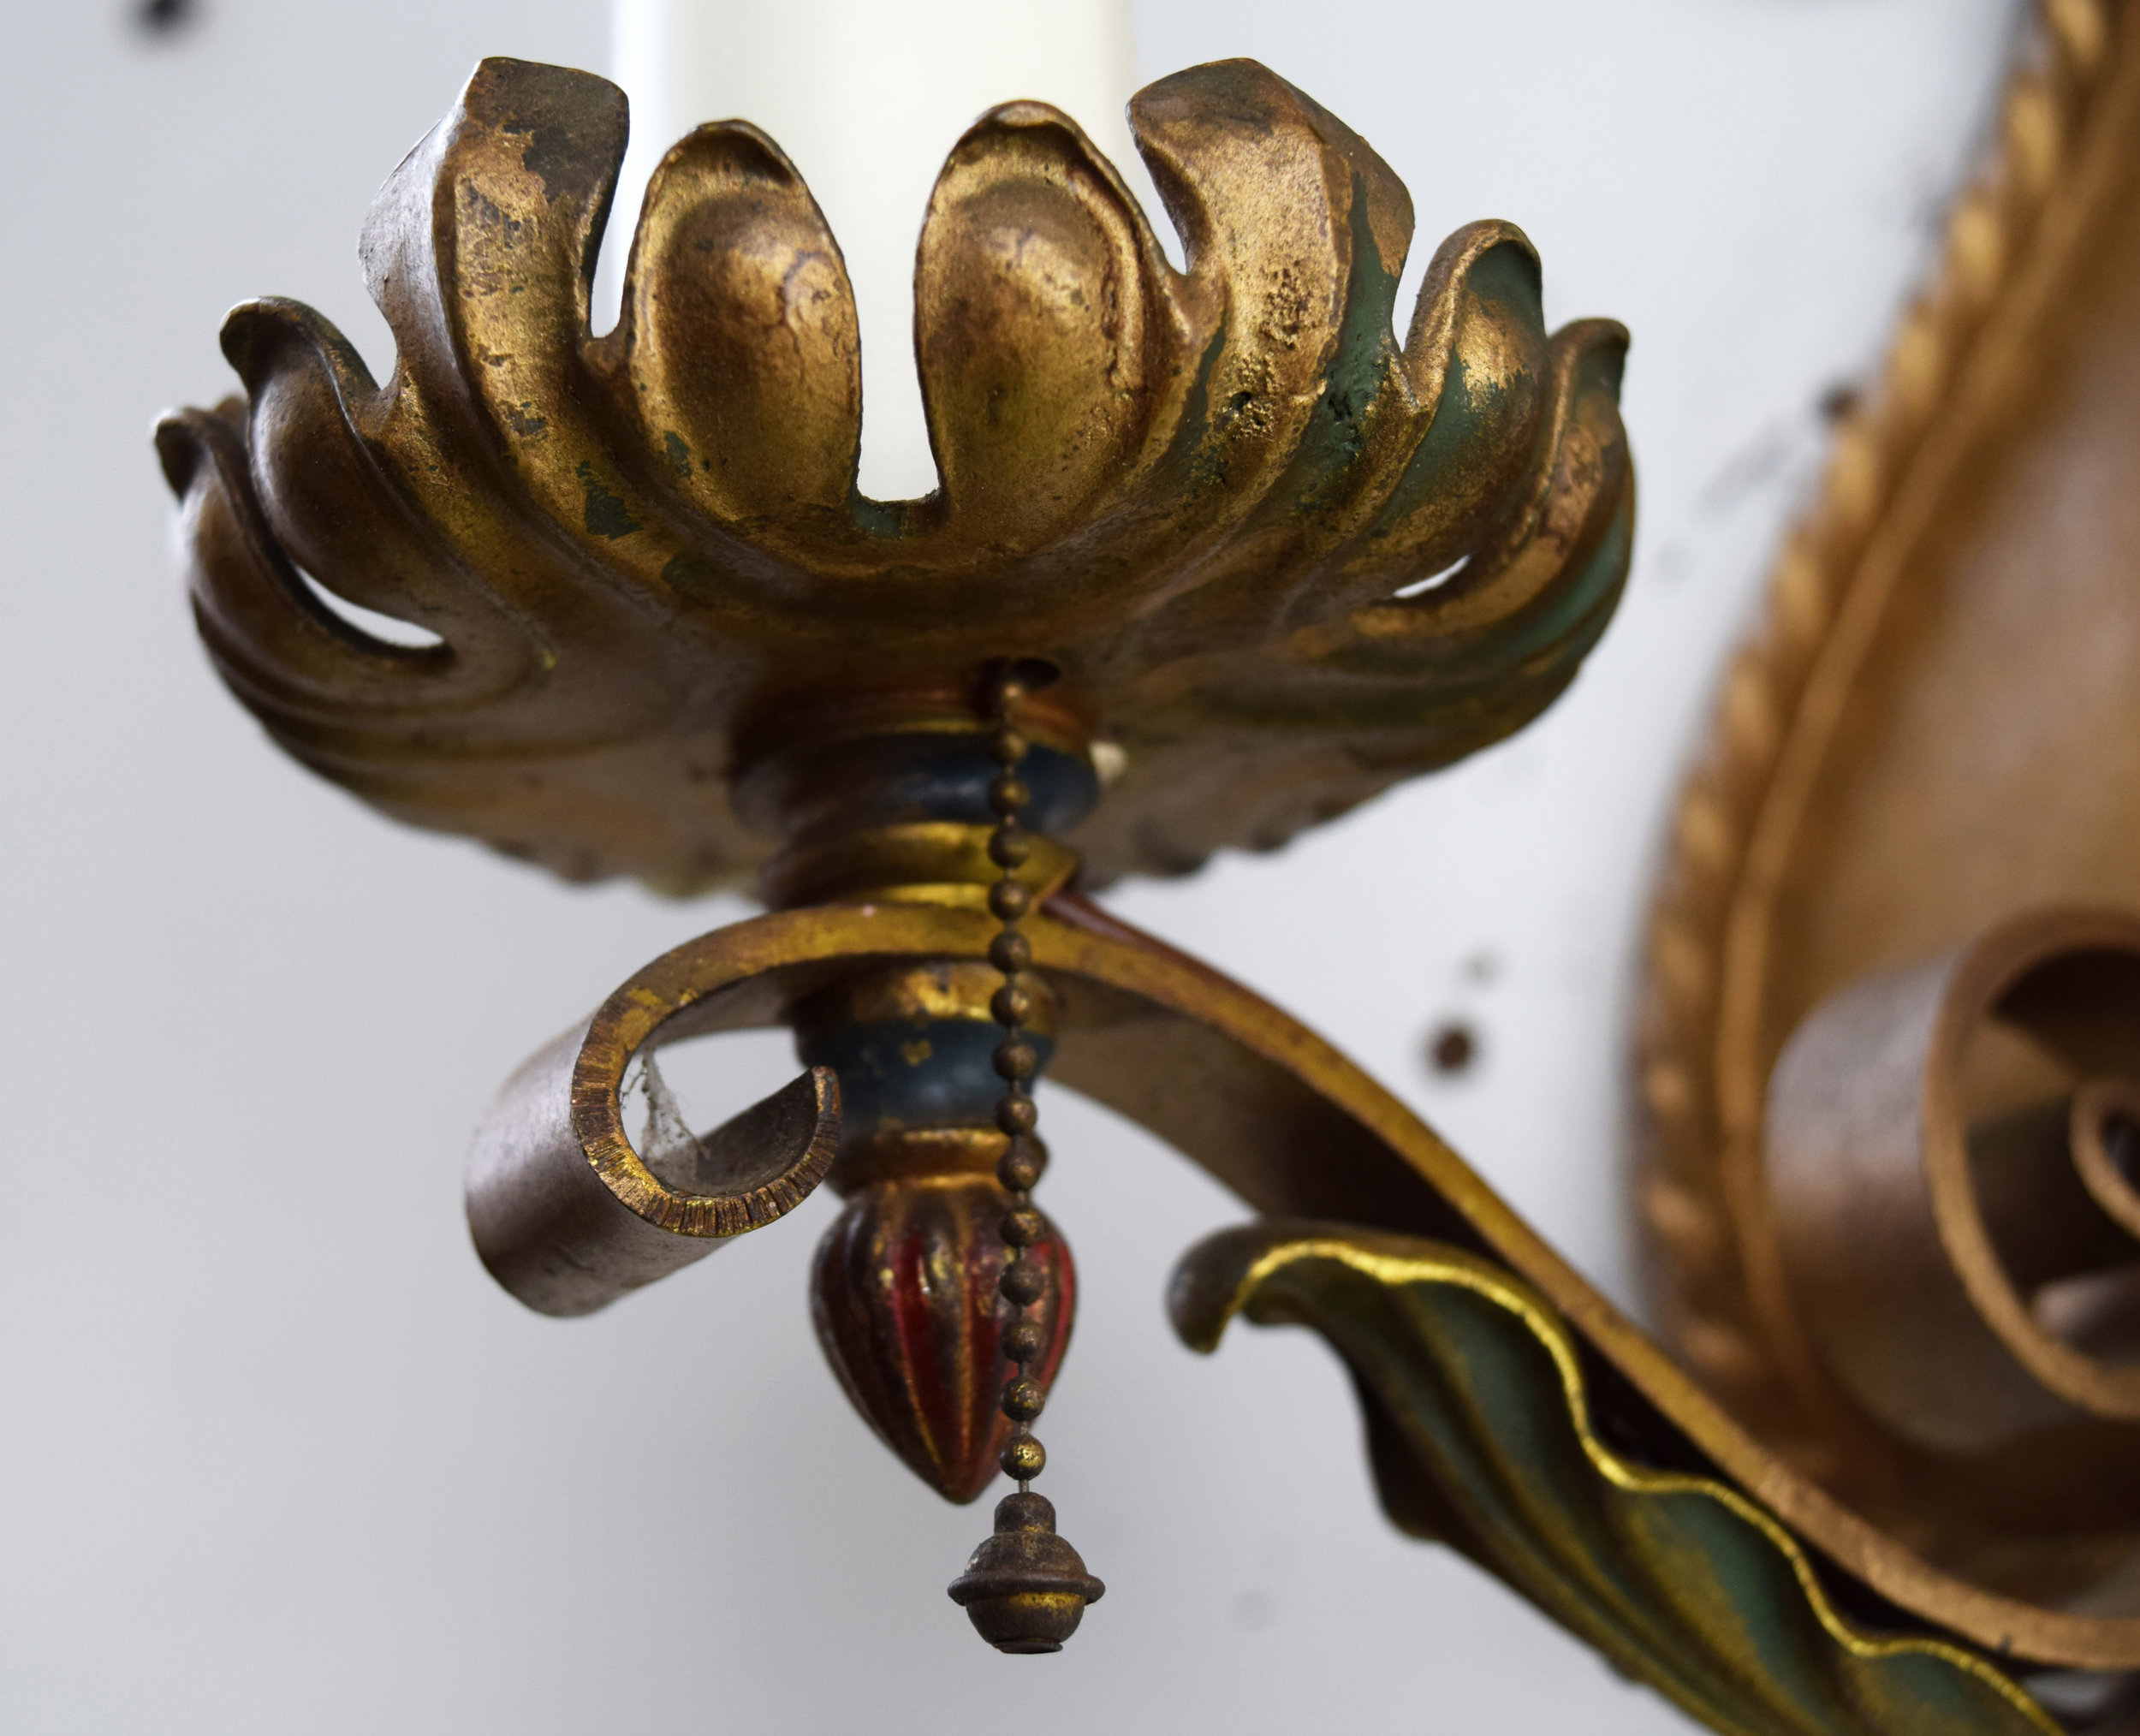 47005-neoclassical-2 candle-sconce-detail arm3.JPG